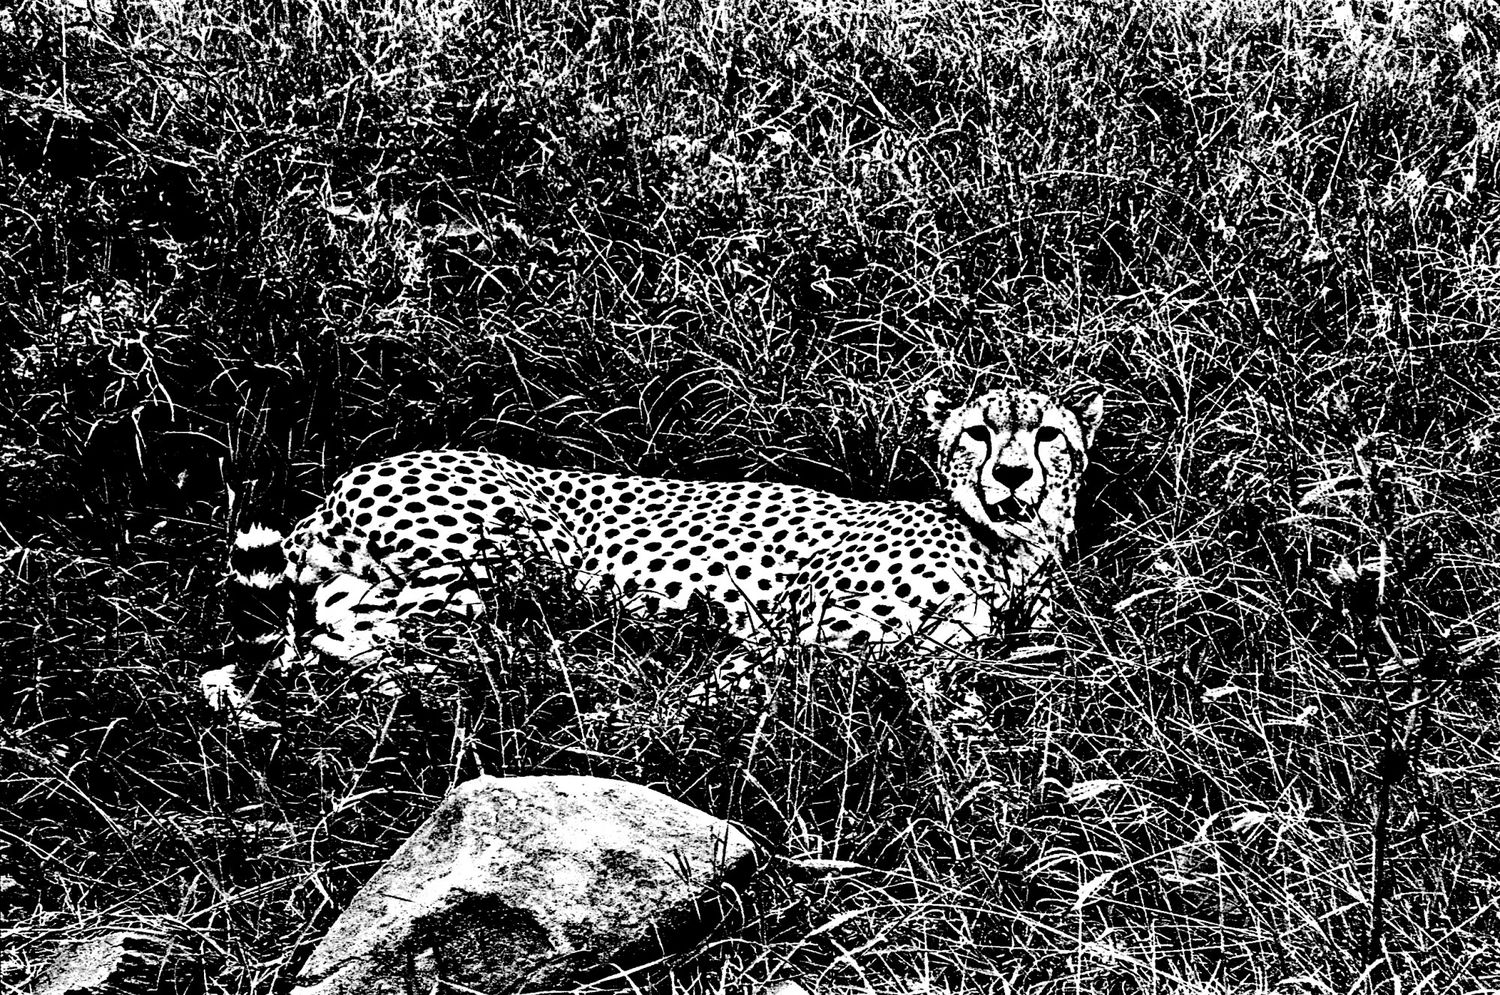 Cheetah, Serengeti 2016   Edition 1 of 2